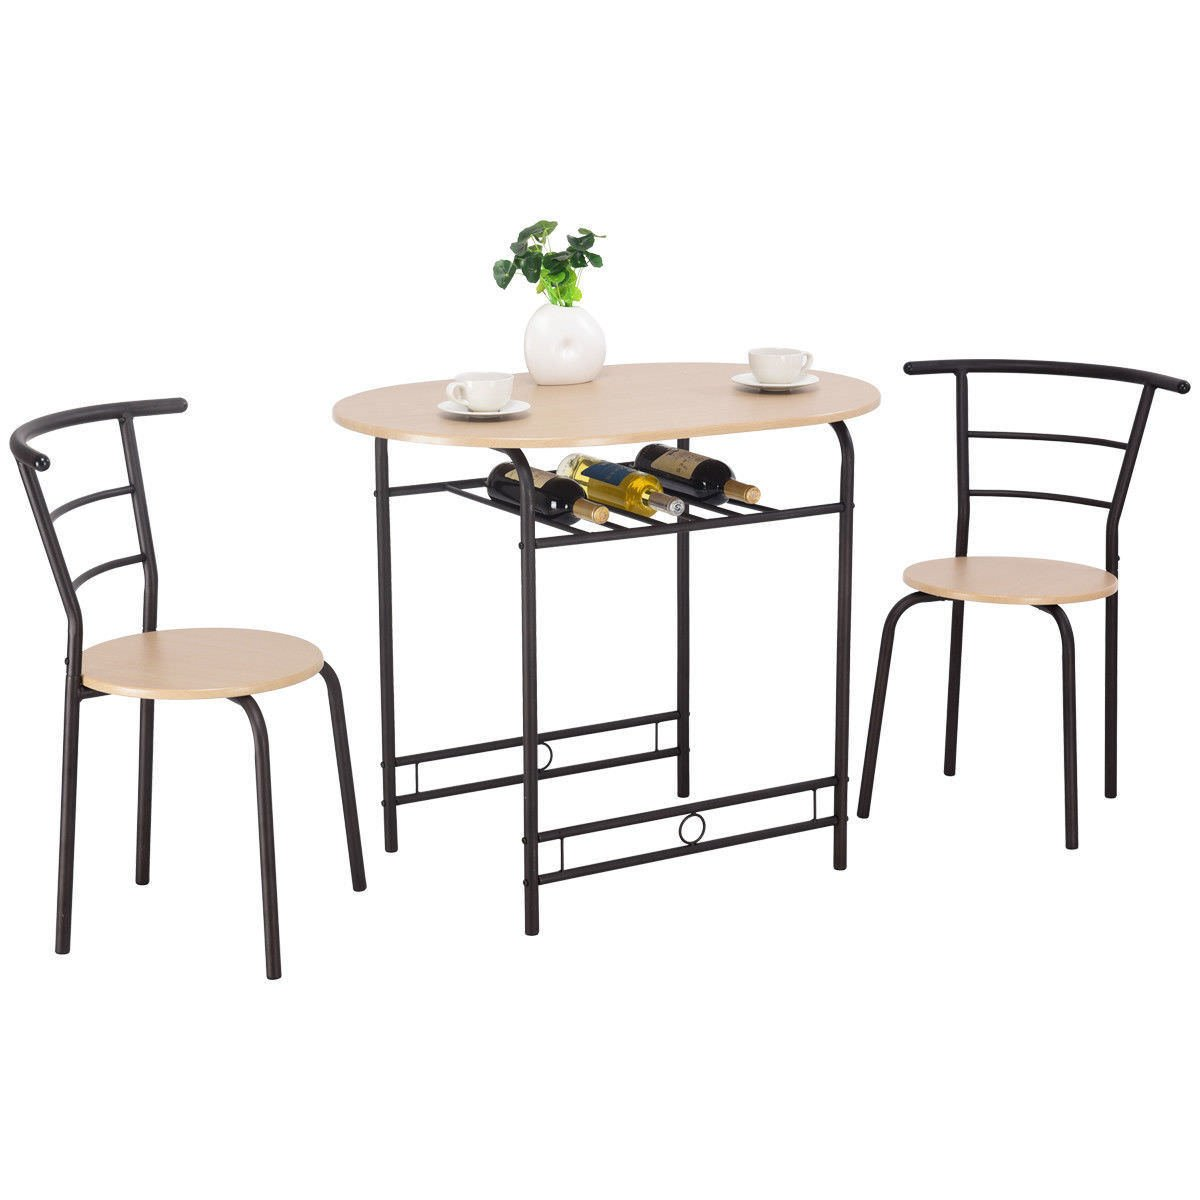 Giantex 3 PCS Dining Table Set w/1 Table and 2 Chairs Home Restaurant Breakfast Bistro Pub Kitchen Dining Room Furniture (Natural)